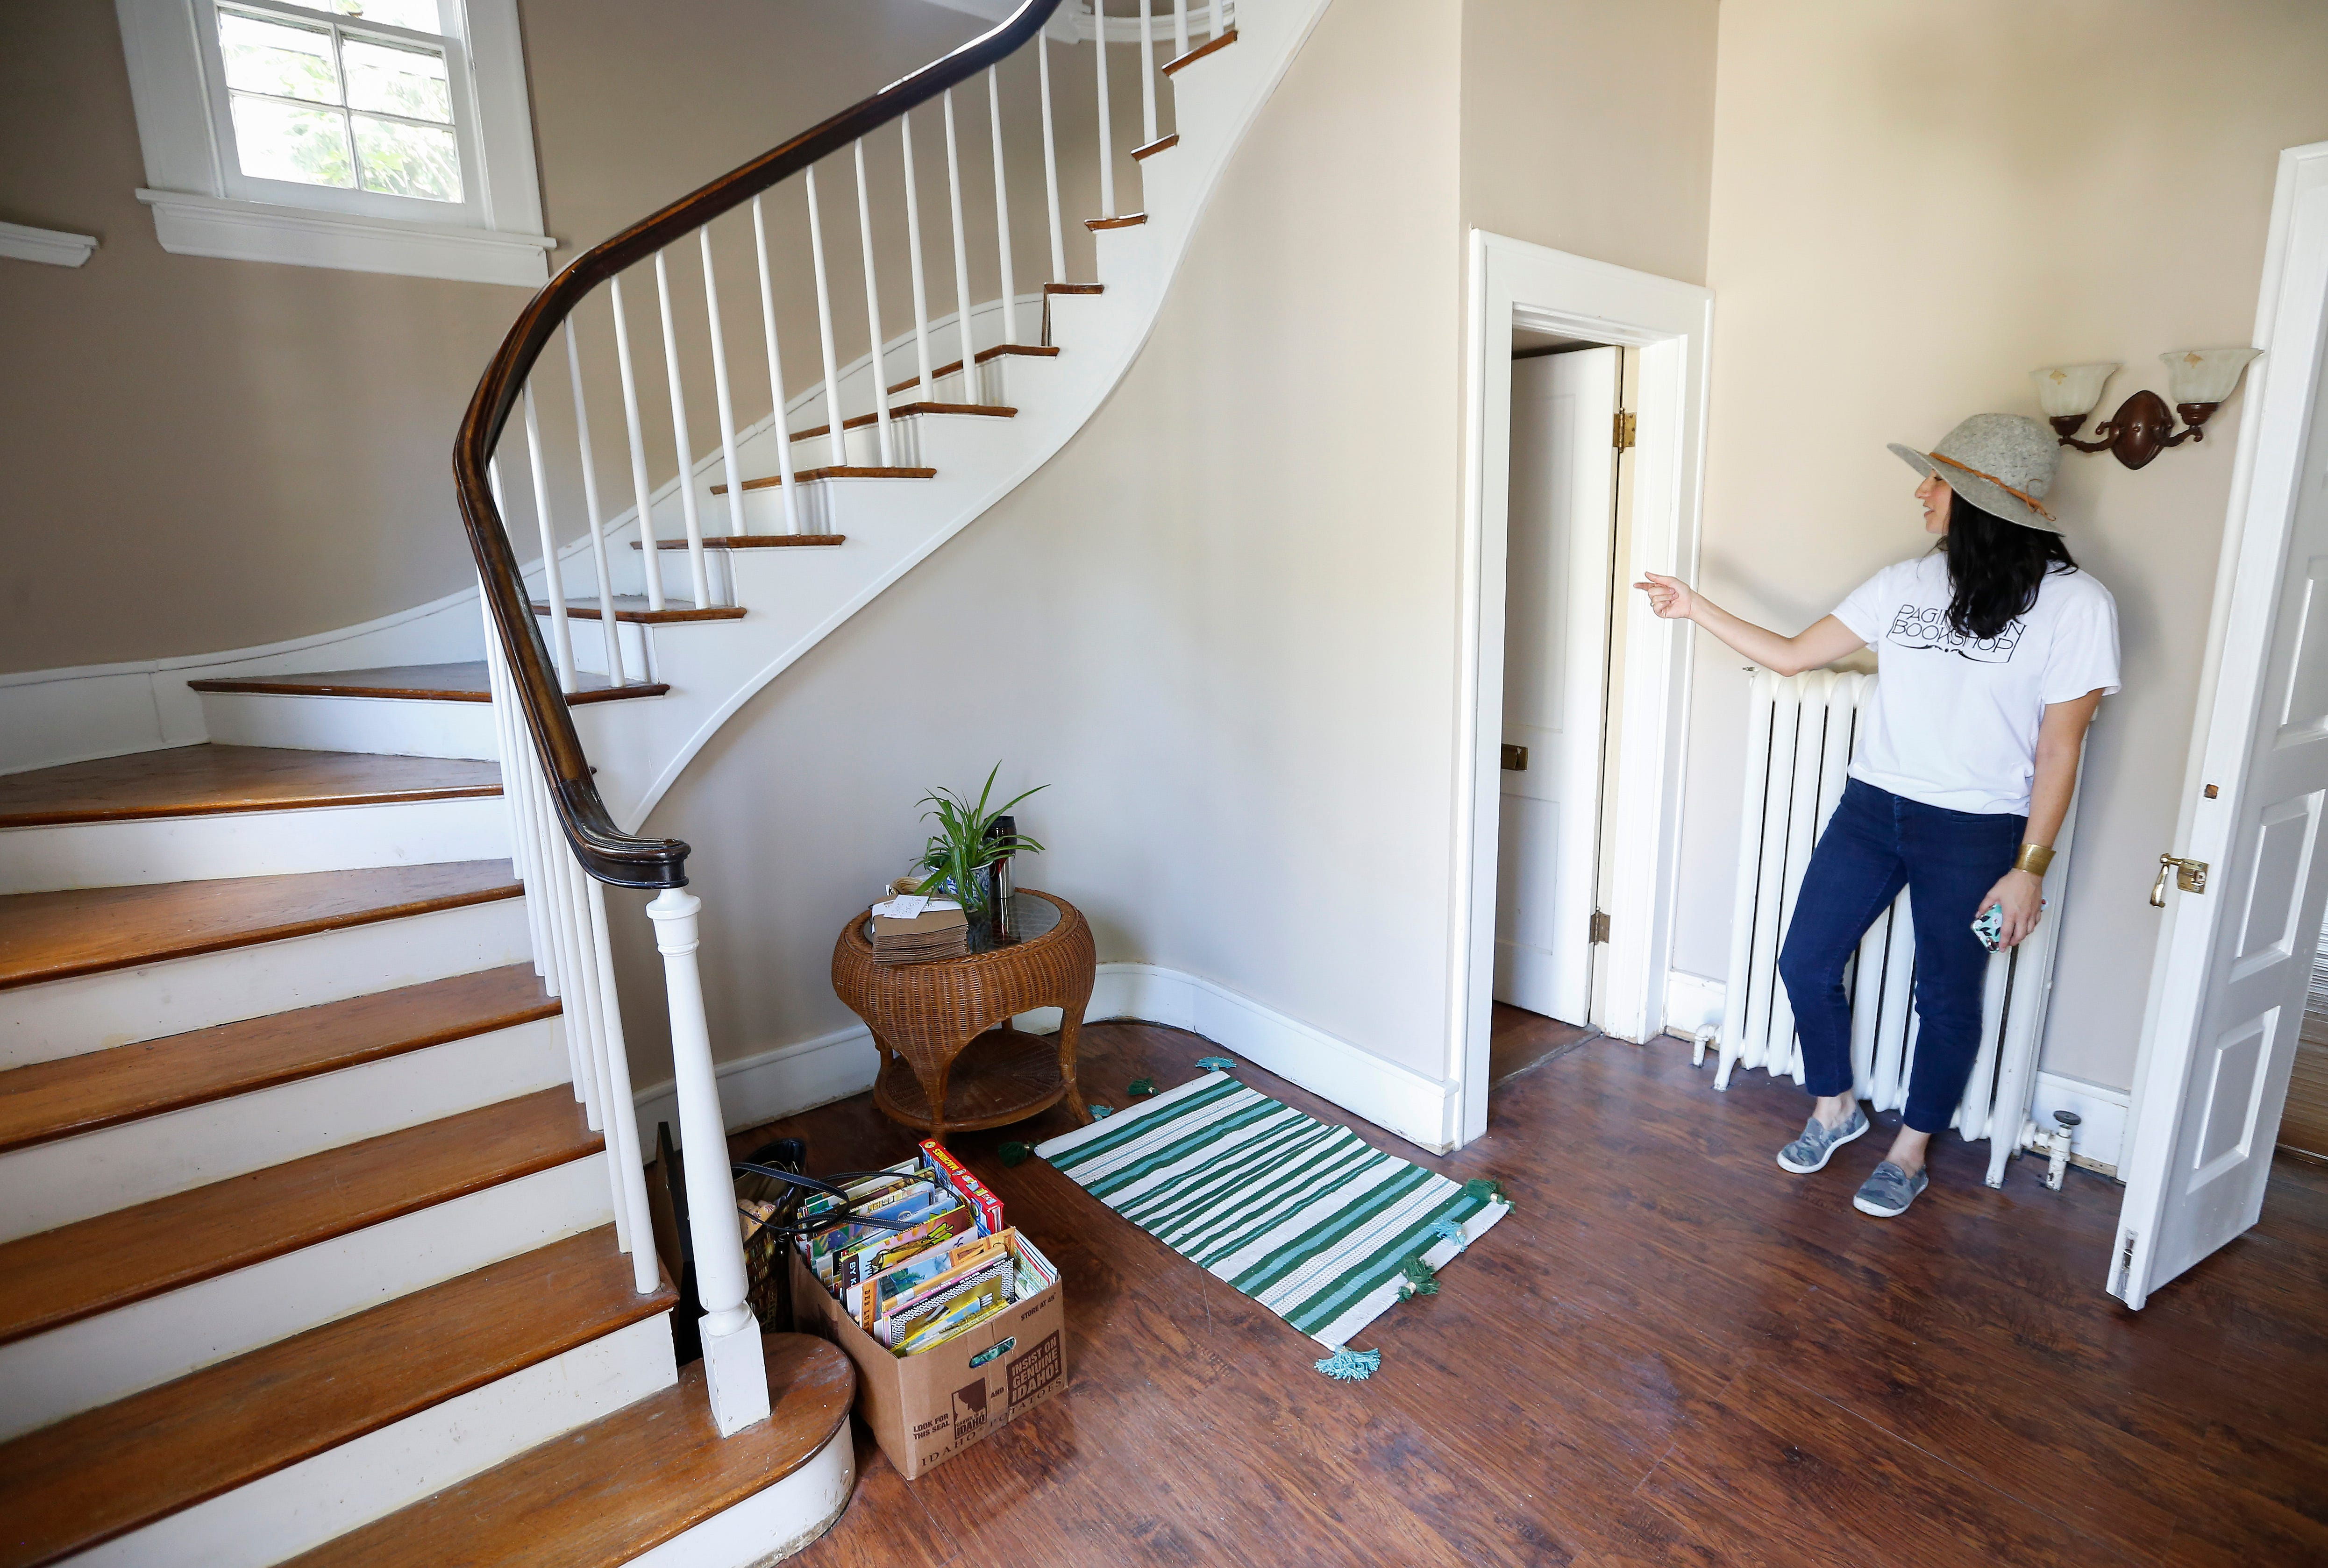 Jennifer Murvin, one of the owners of Pagination Bookshop points out their Harry Potter style room under the stairs at their location at 1150 E. Walnut St.